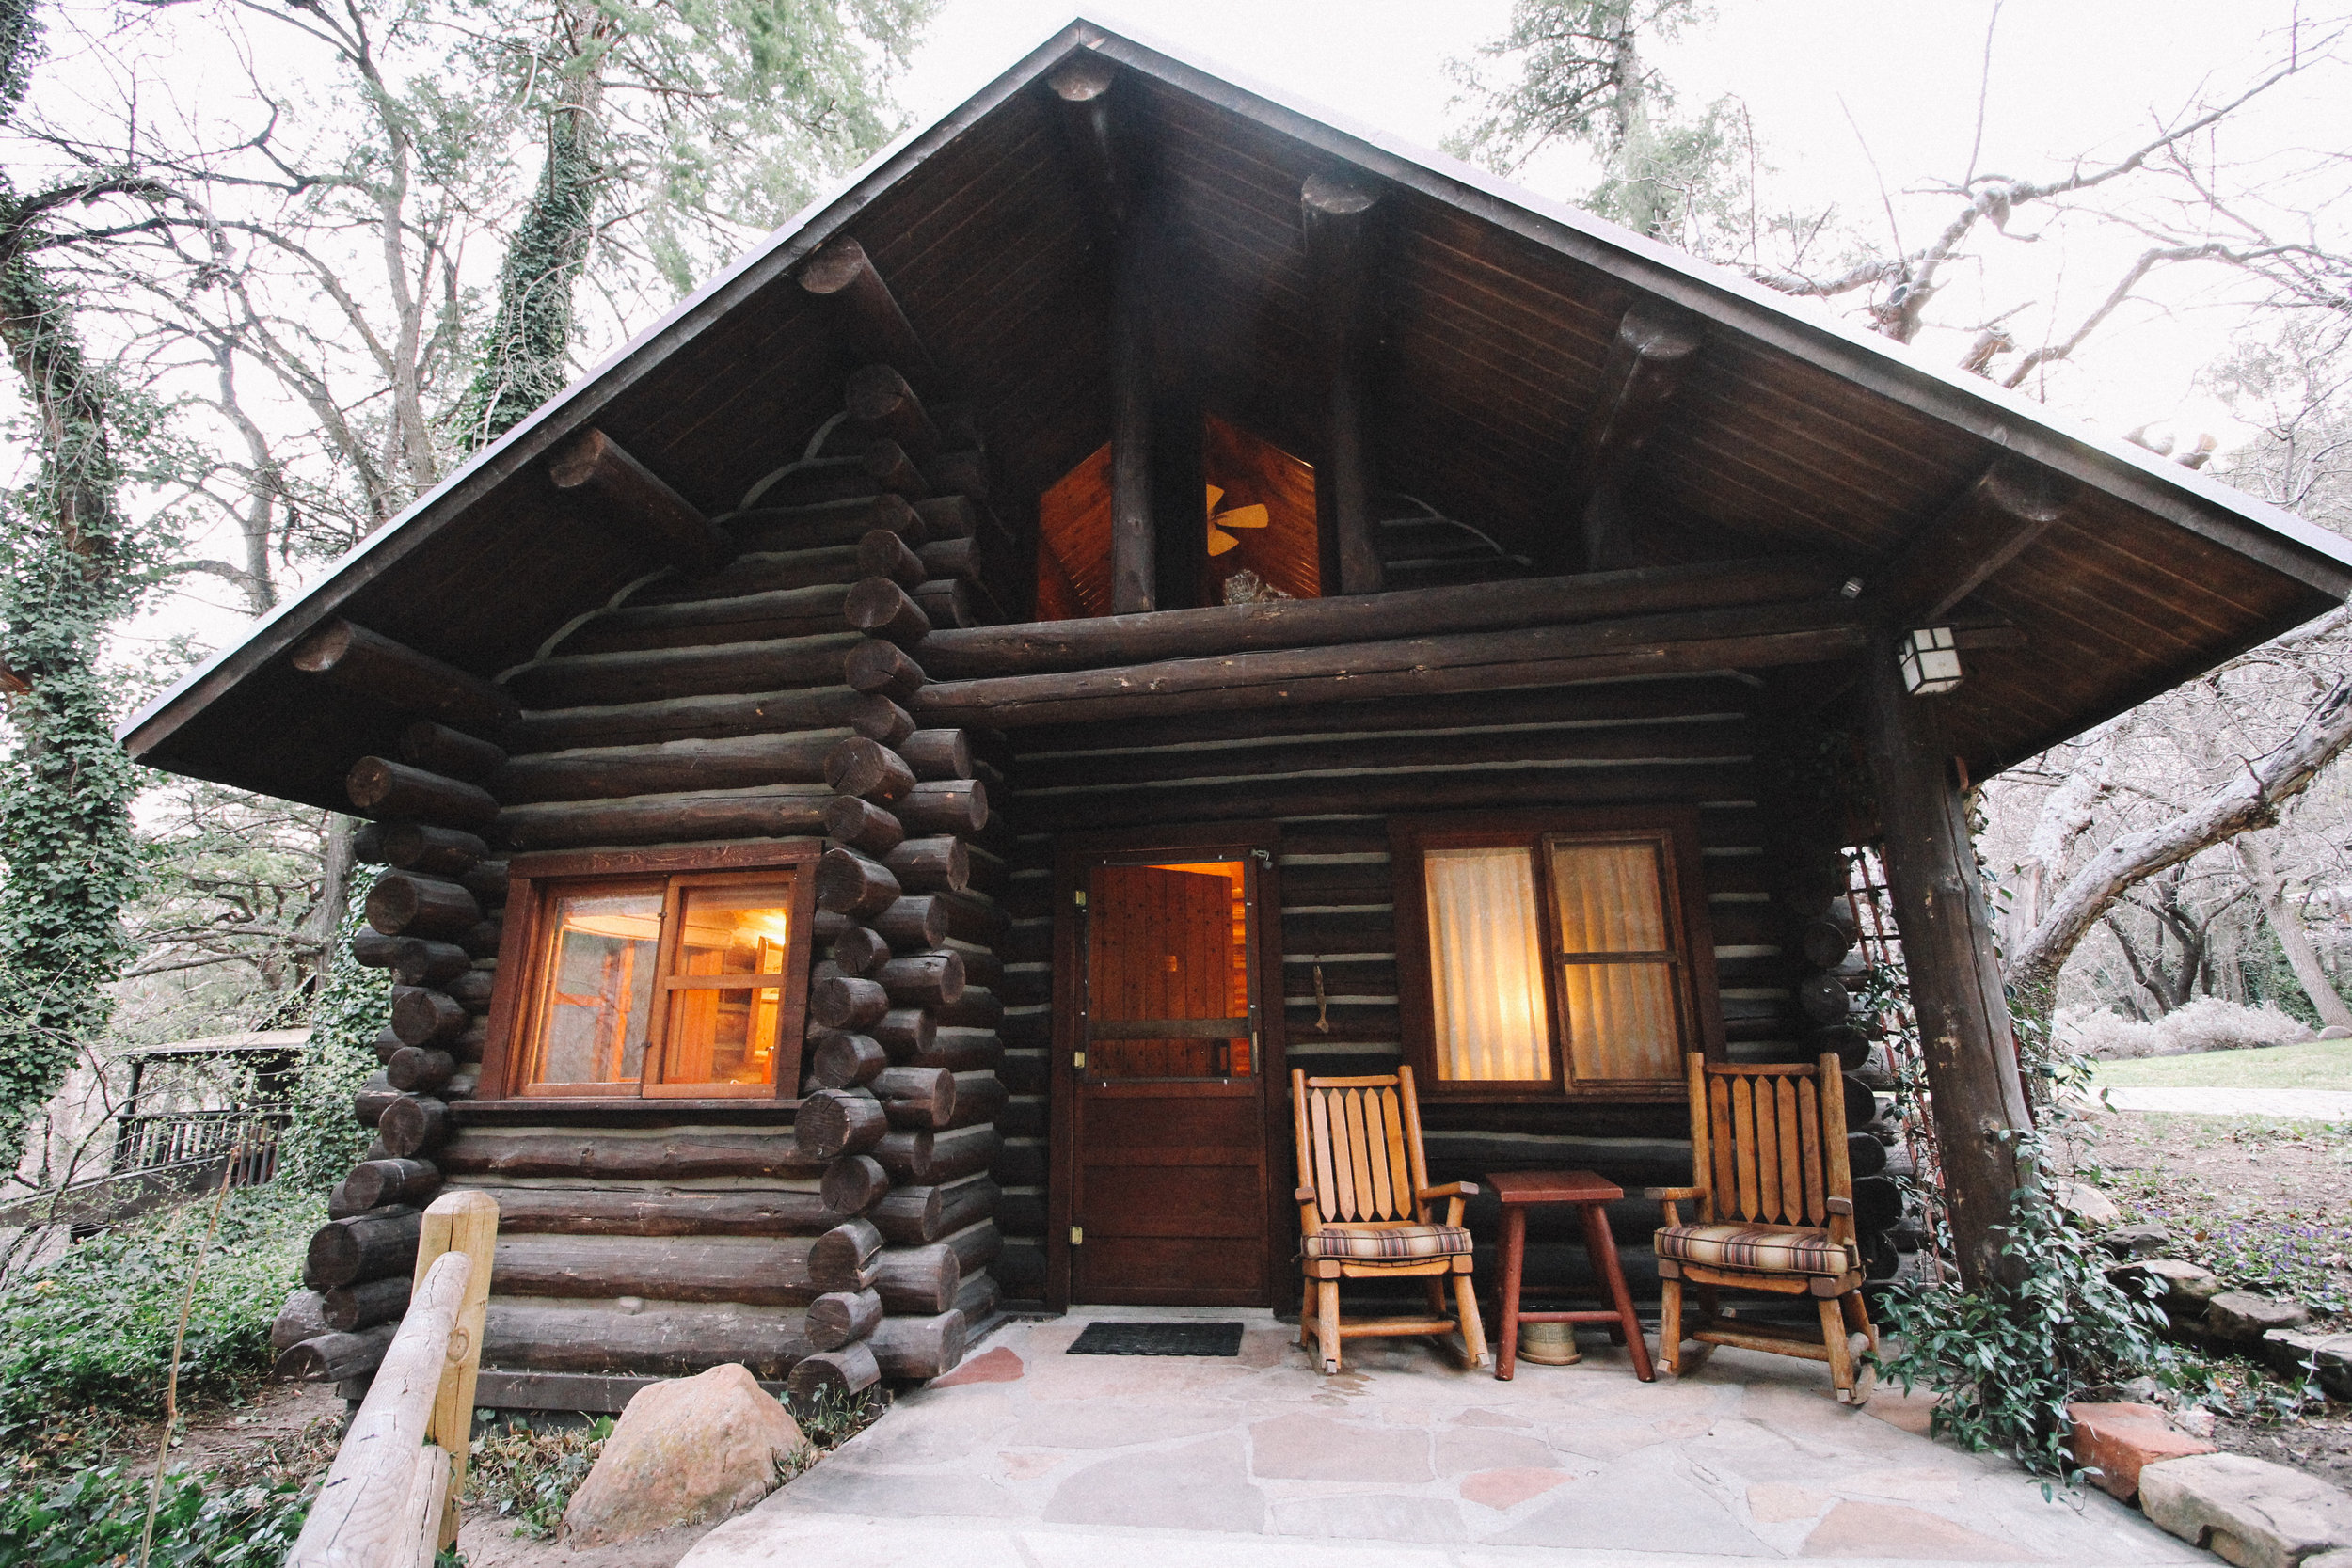 Orchard Canyon on Oak Creek Lodging Review-14.jpg